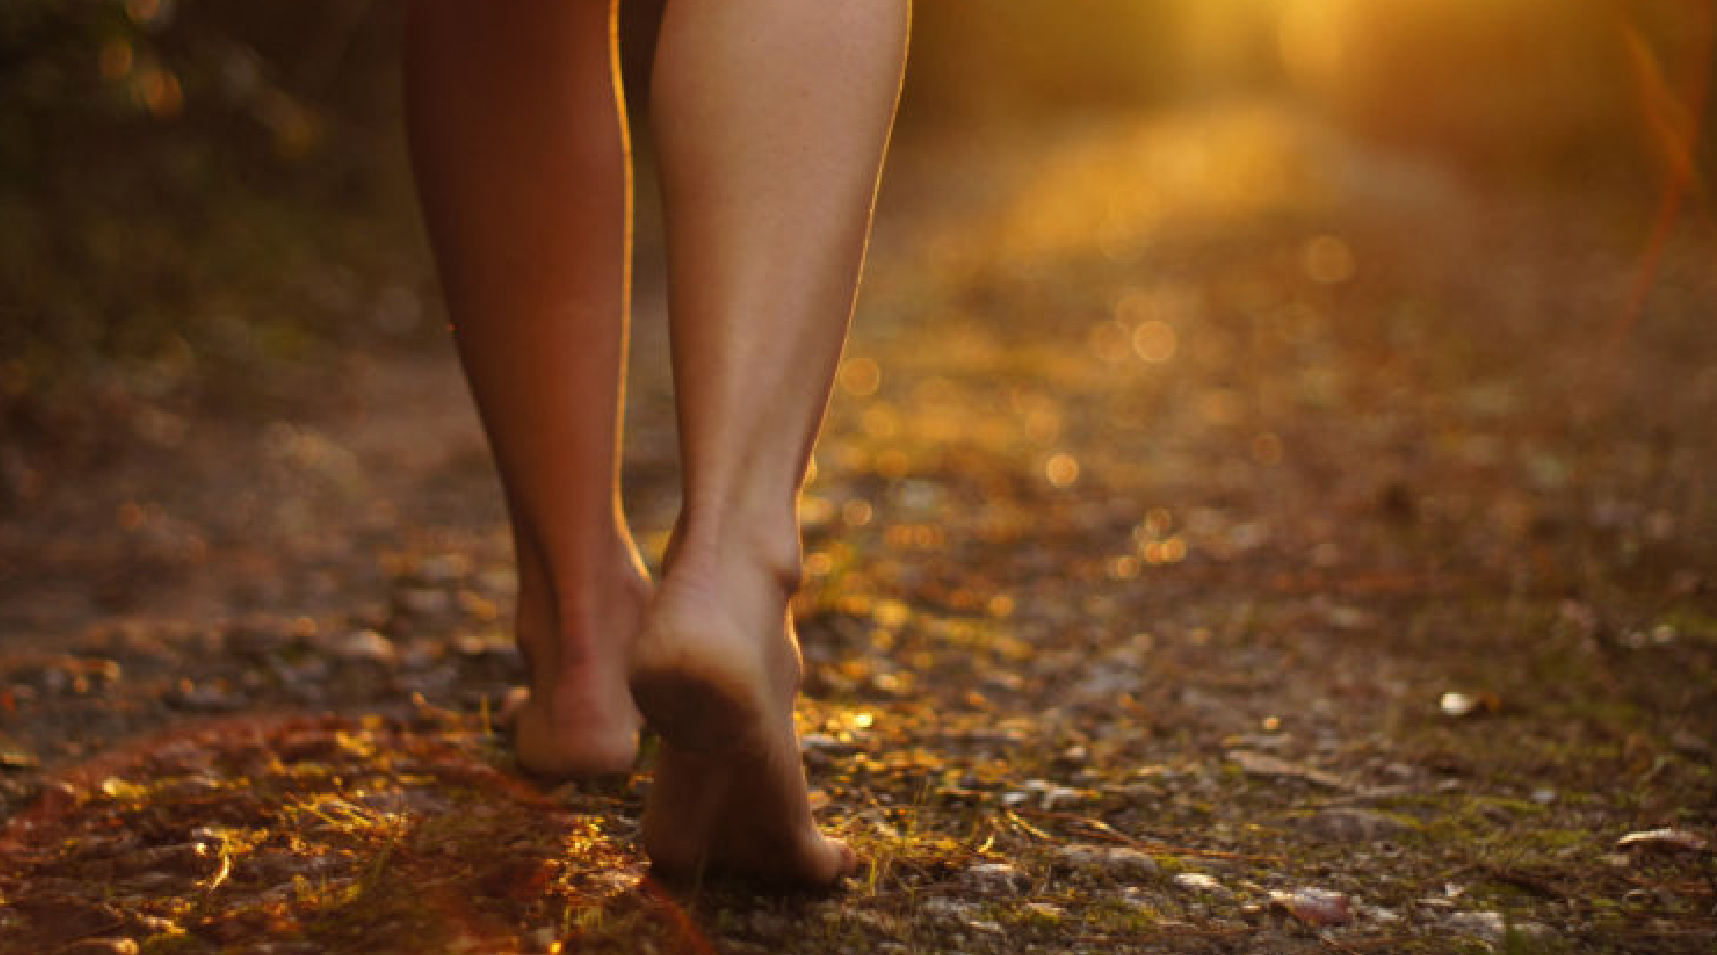 woman walking barefoot through a forest